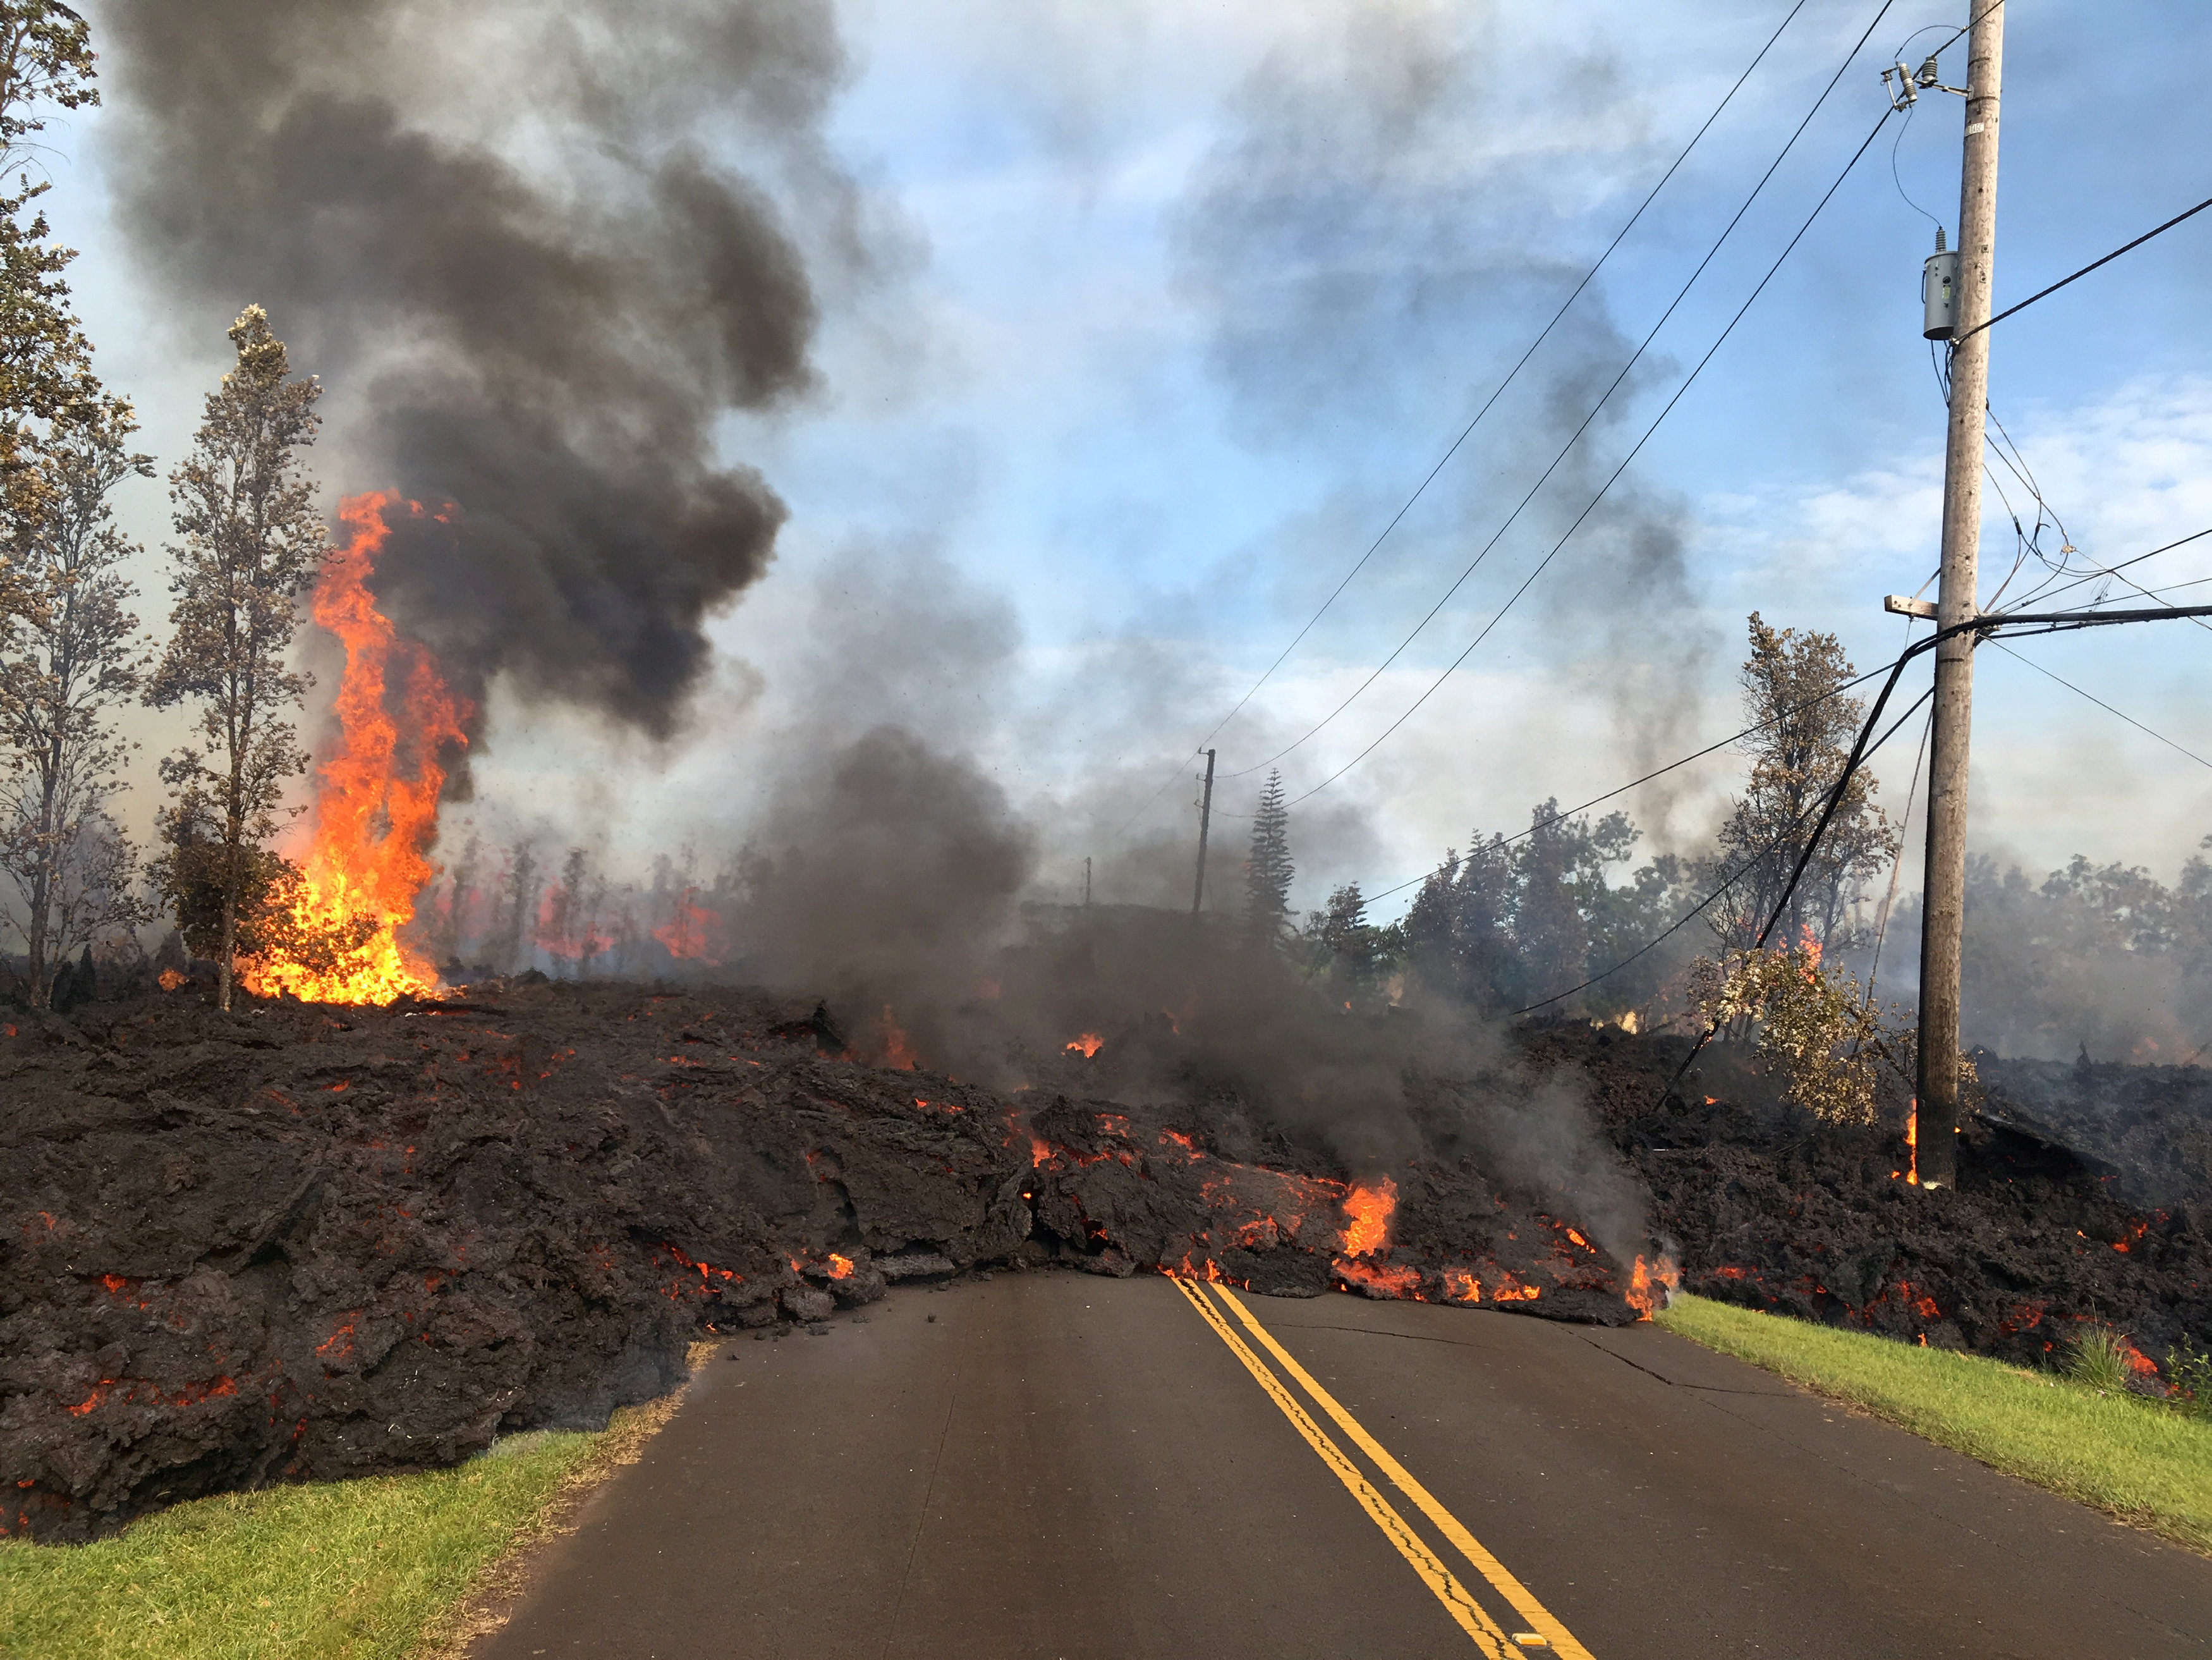 Lava advances along a street near a fissure in Leilani Estates, on Kilauea Volcano's lower East Rift Zone, Hawaii, the U.S., May 5, 2018. U.S. Geological Survey/Handout via REUTERS